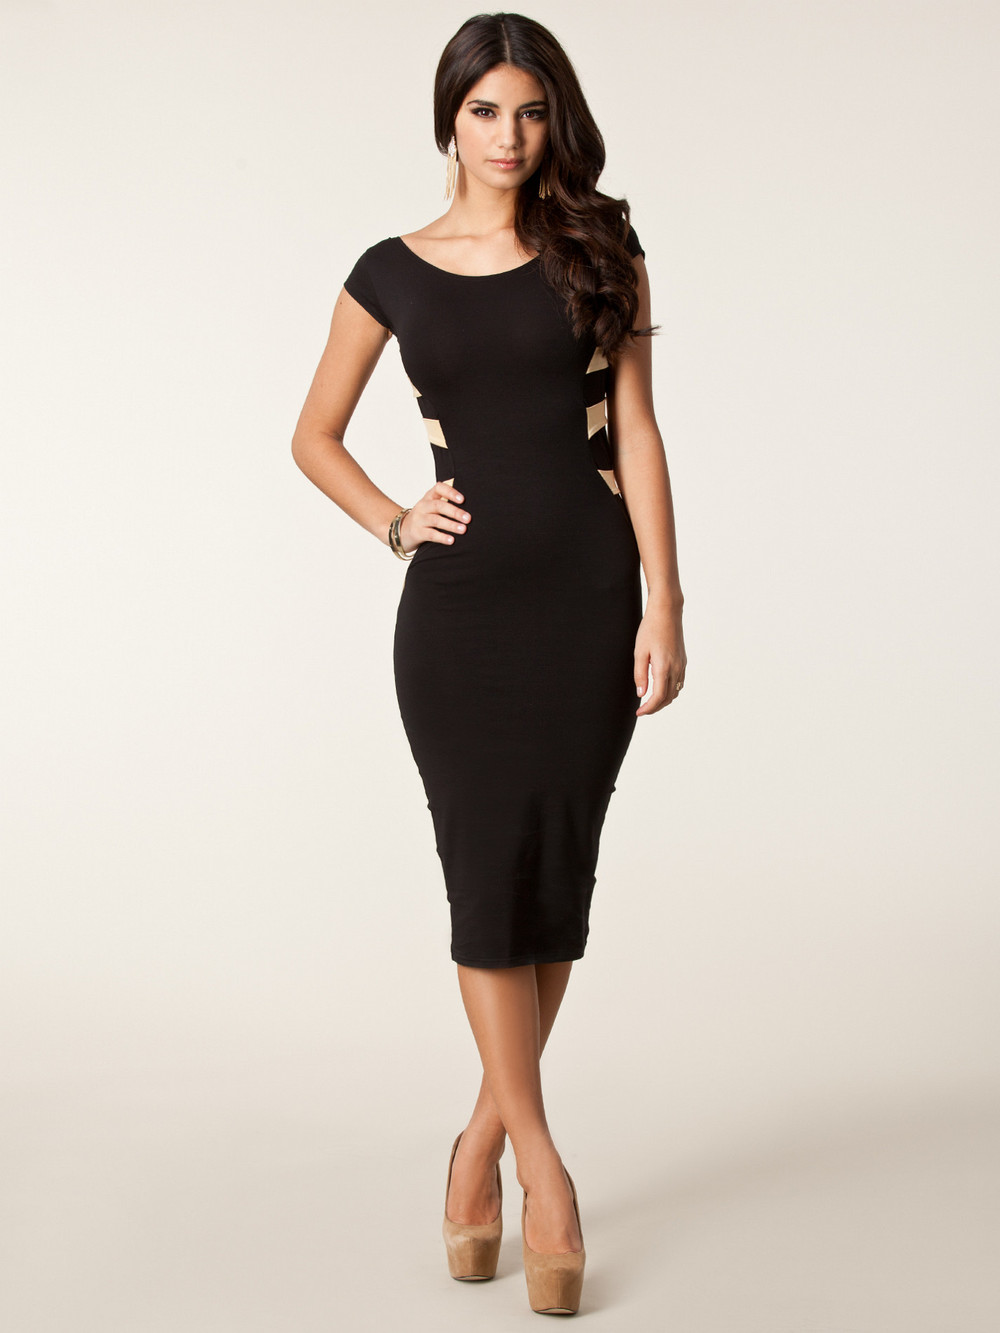 Collection Bodycon Knee Length Dress Pictures - Reikian